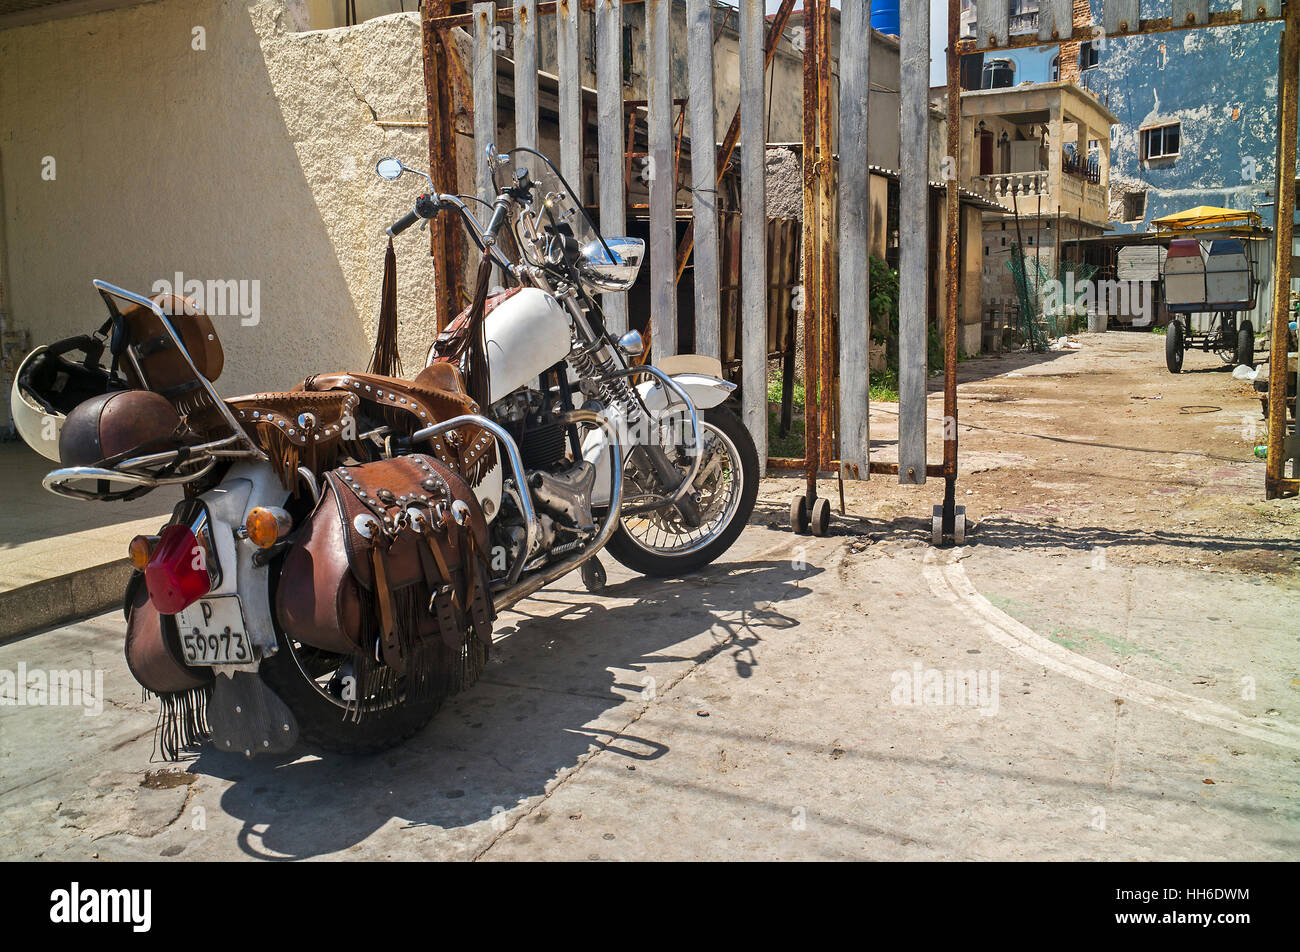 white motorbike parked with leather sadle bags and handlebar tassles on a road in Havana Cuba - Stock Image